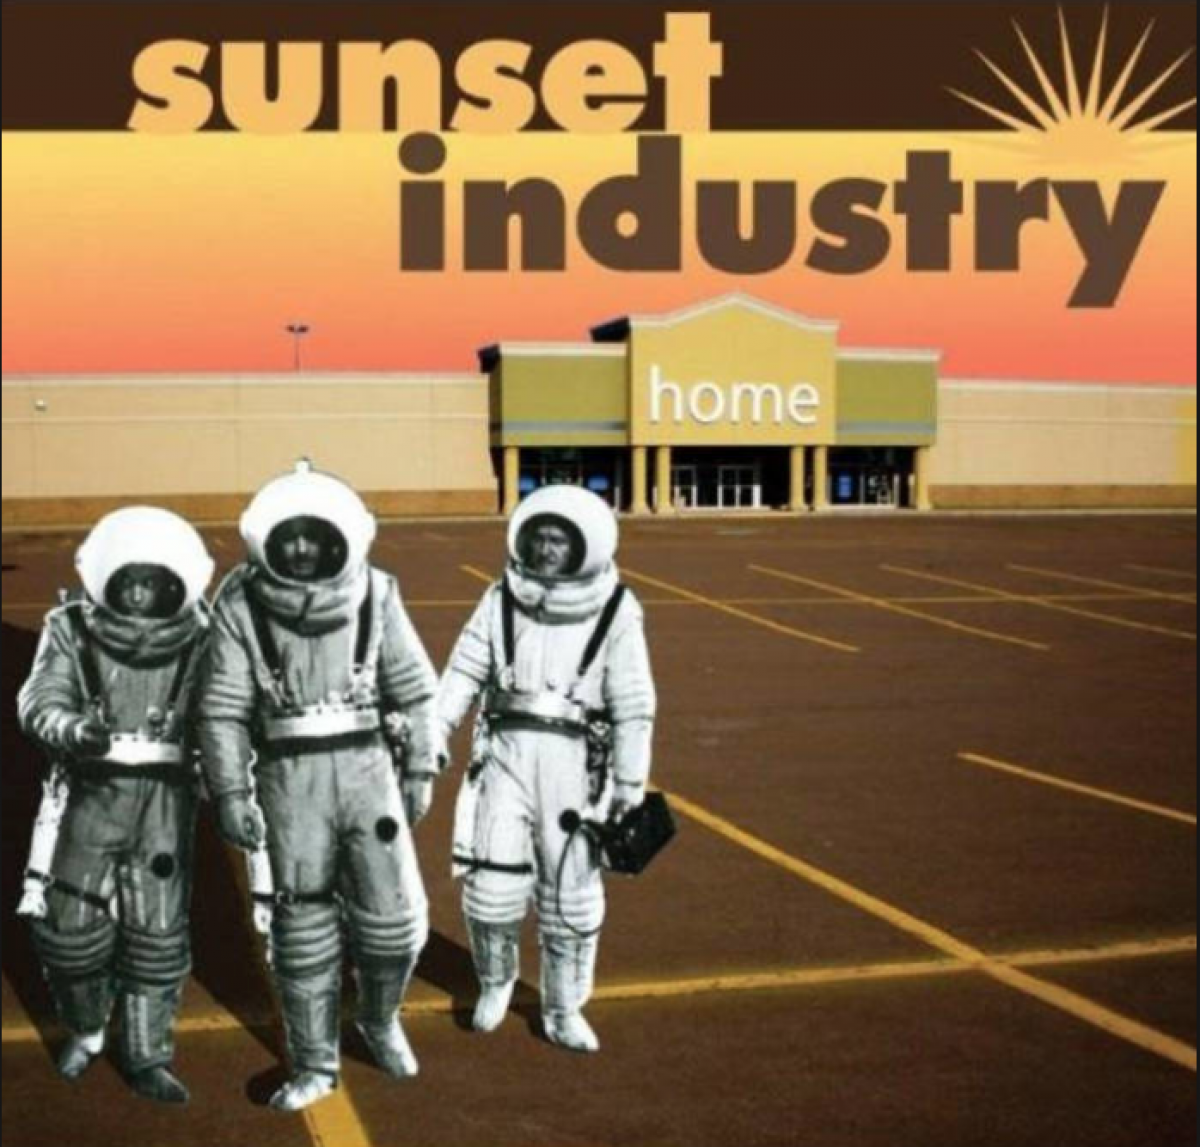 Sunset Industry